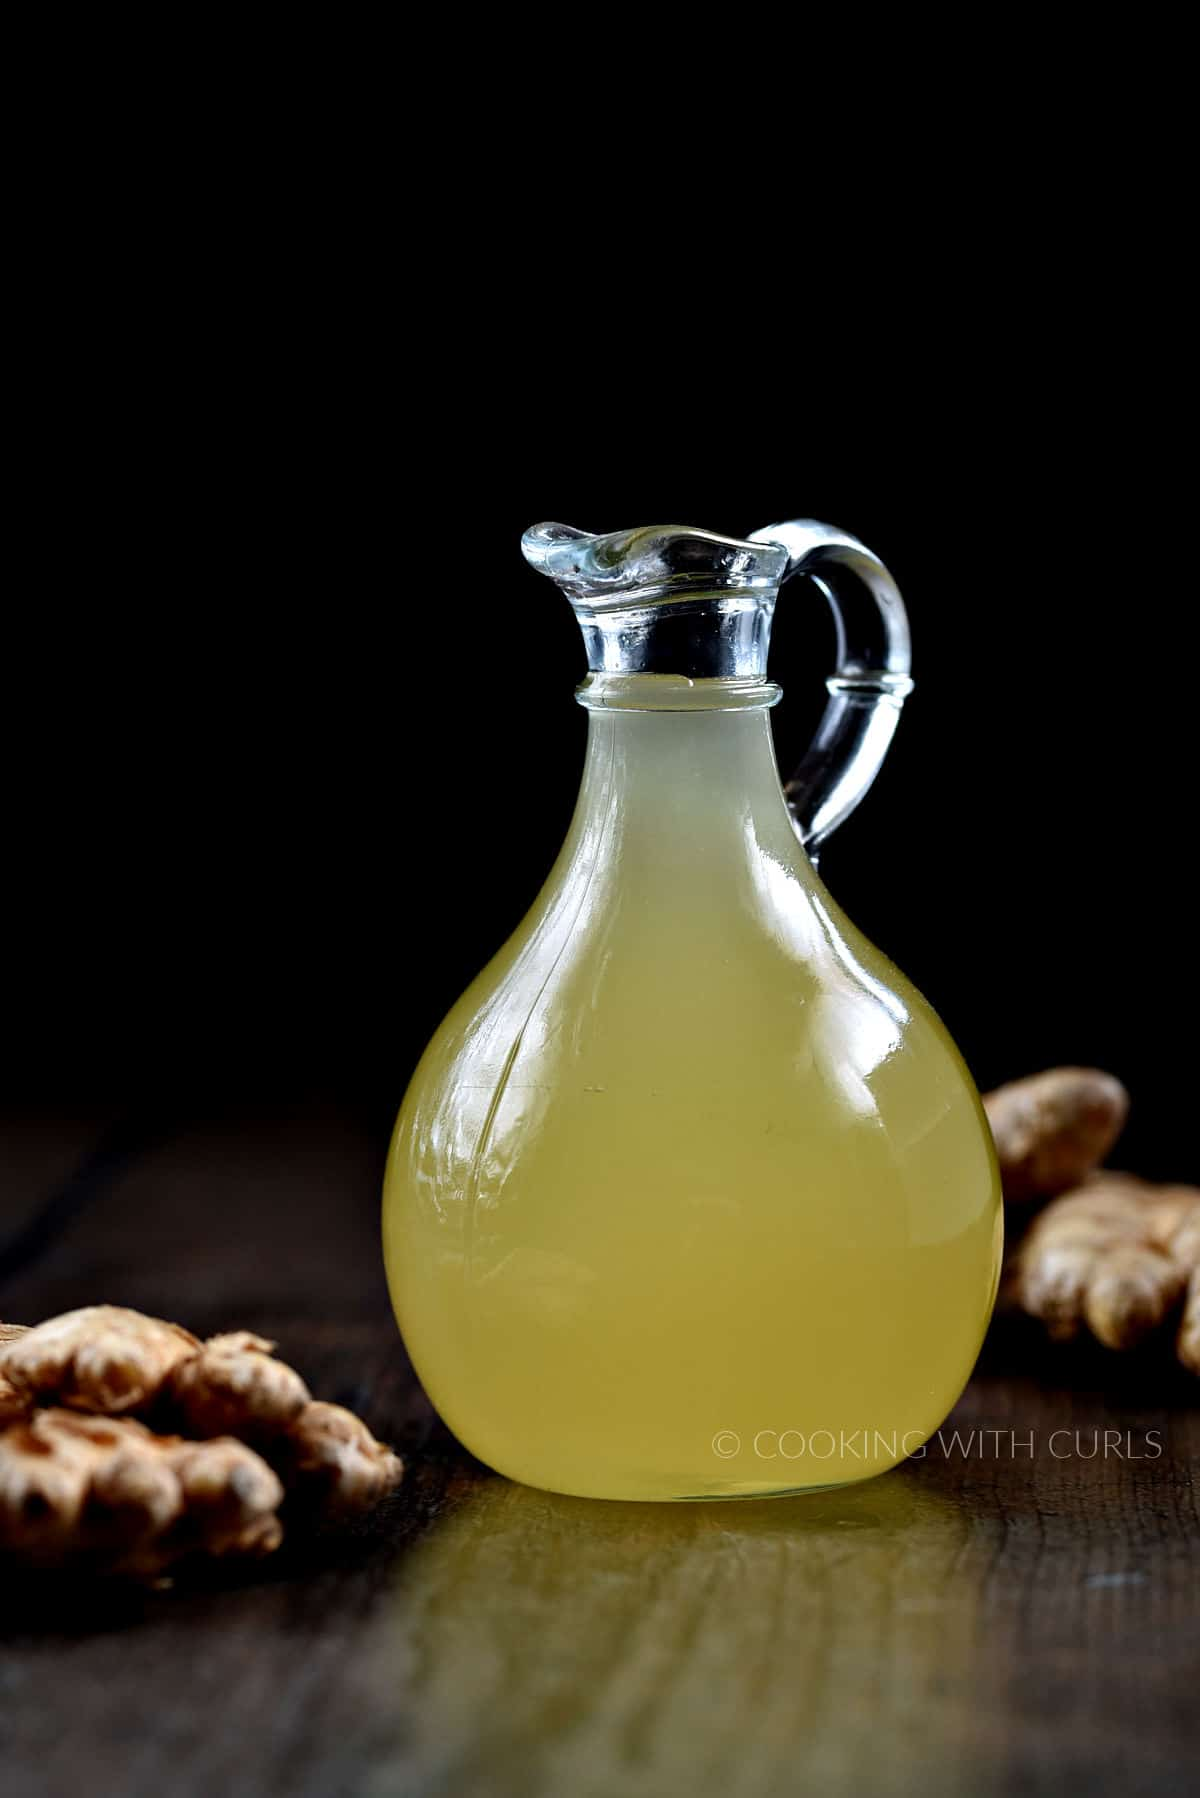 Ginger simple syrup in a glass jar with ginger root on the left  and right sides.